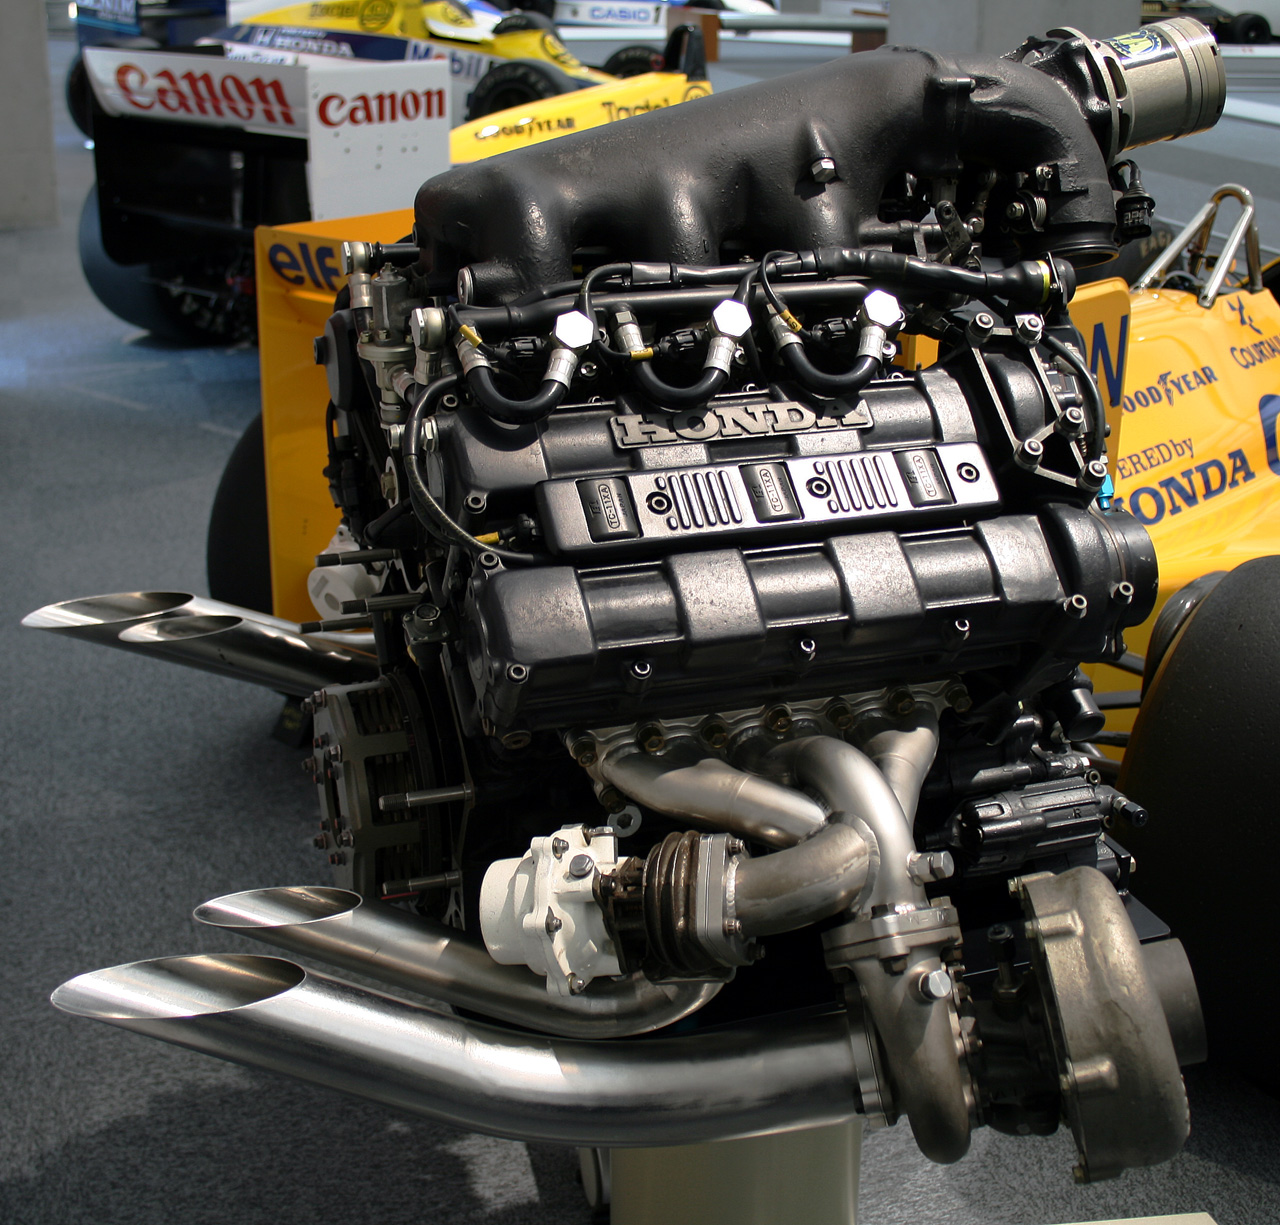 Talking About F1 The F1 Blog Why F1 Needs A Turbo Charge New Engine Regulations For 2014